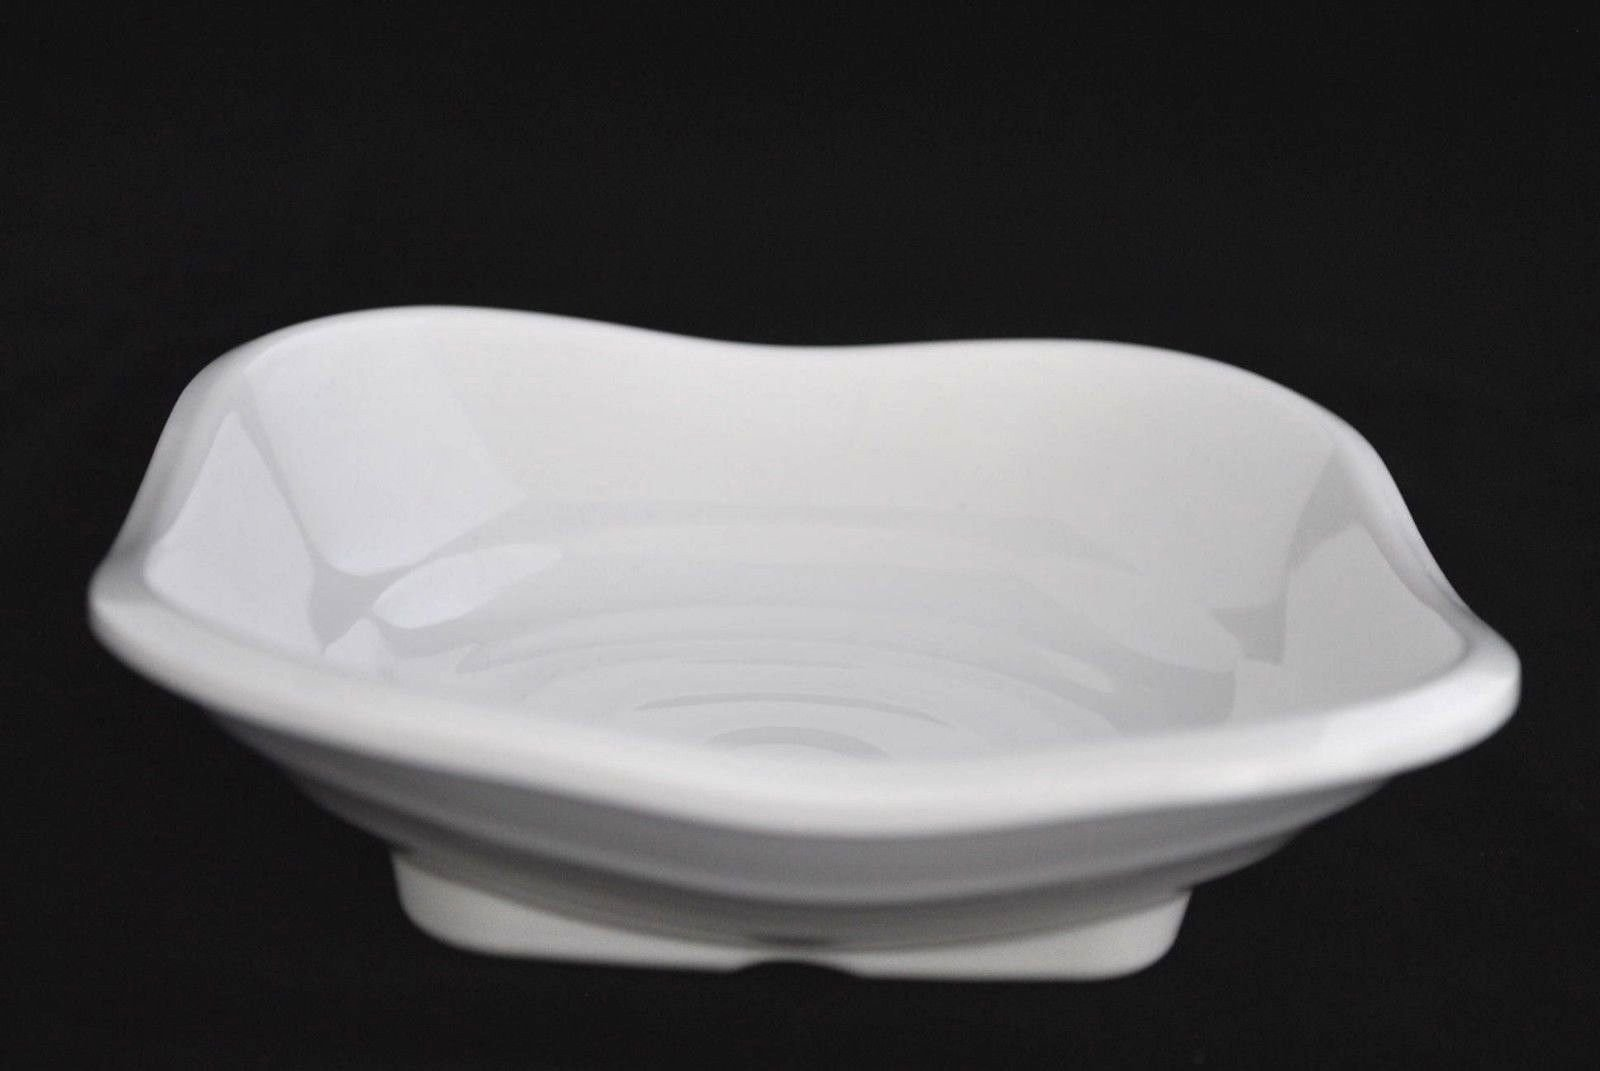 Lucky Star Melamine Square Spicy Soy Sauce Dishes Bowls Mustard Wasabi Sashimi Plastic Dipping Plates, 5.5'' X 5.5'' or 7.5'' X 7.5'', White (20, 7.5'' X 7.5'')